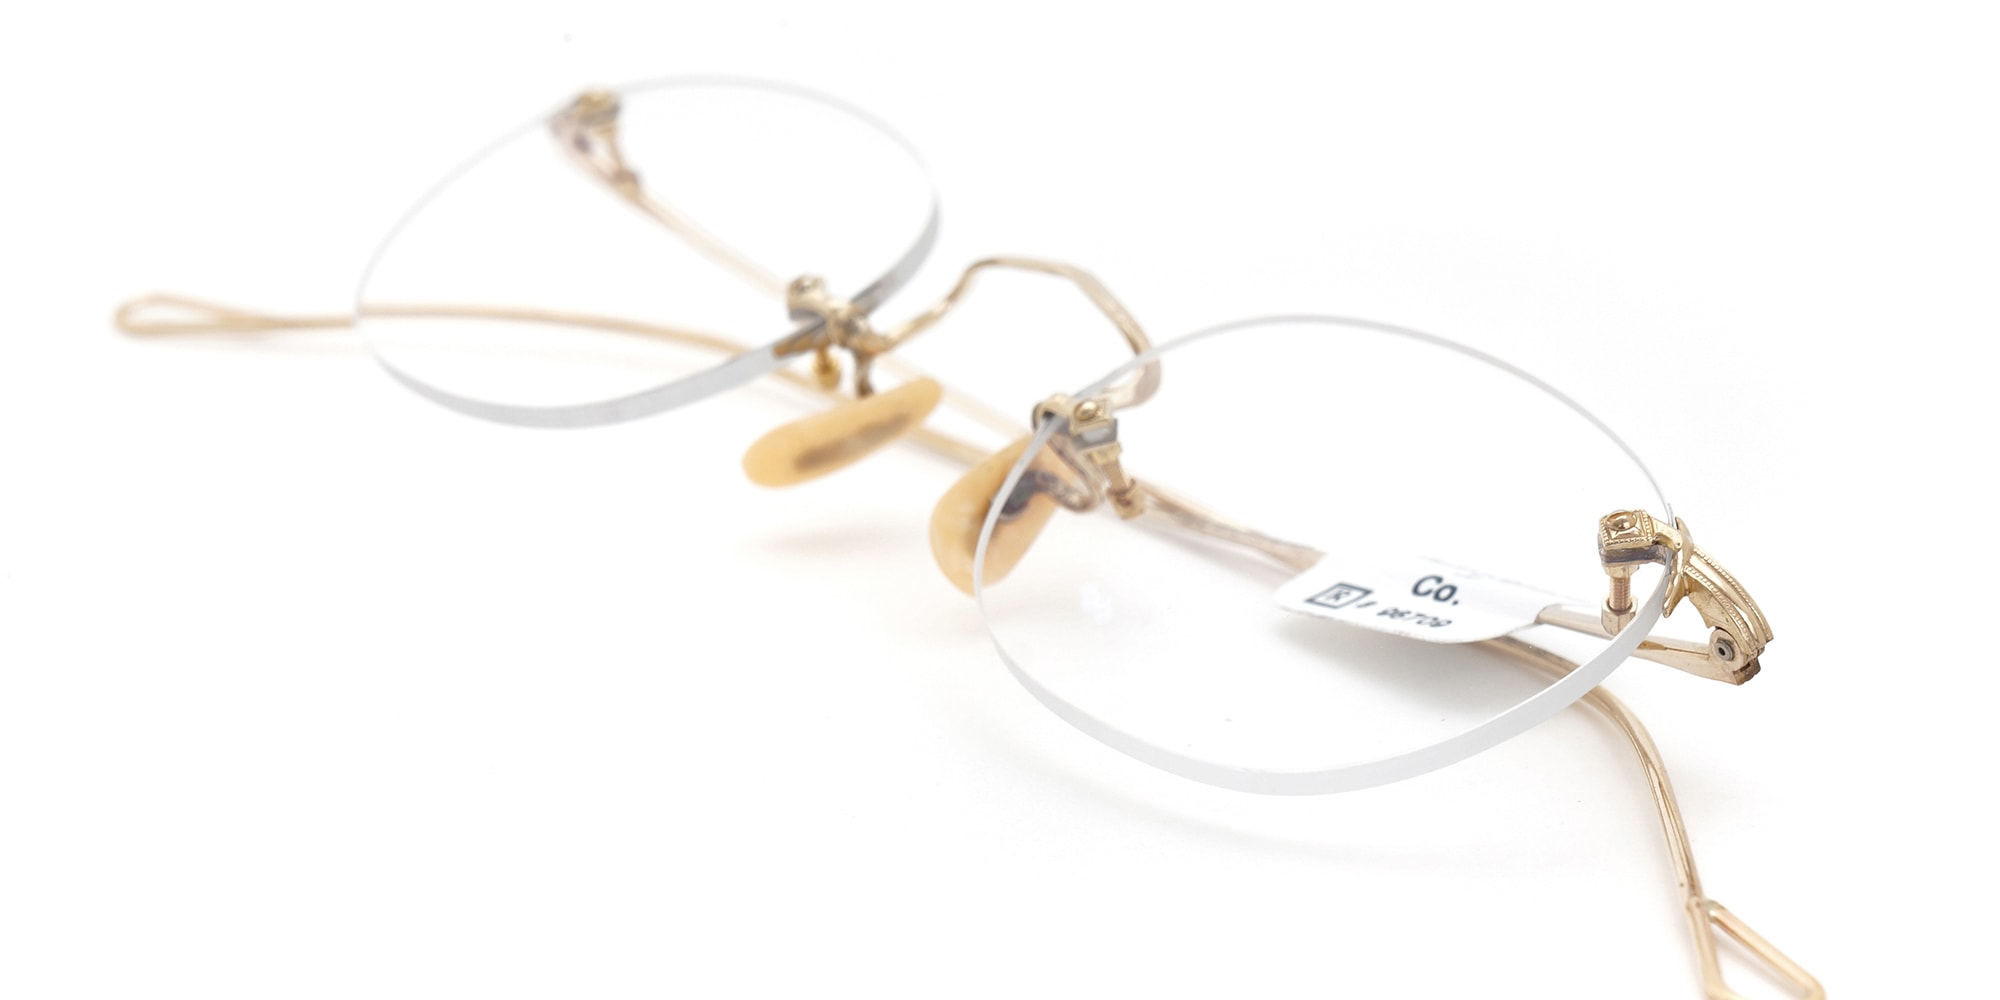 The Spectacle メガネ 1930s American Optical 3-Piece Ful-Vue G 43-22 イメージ8